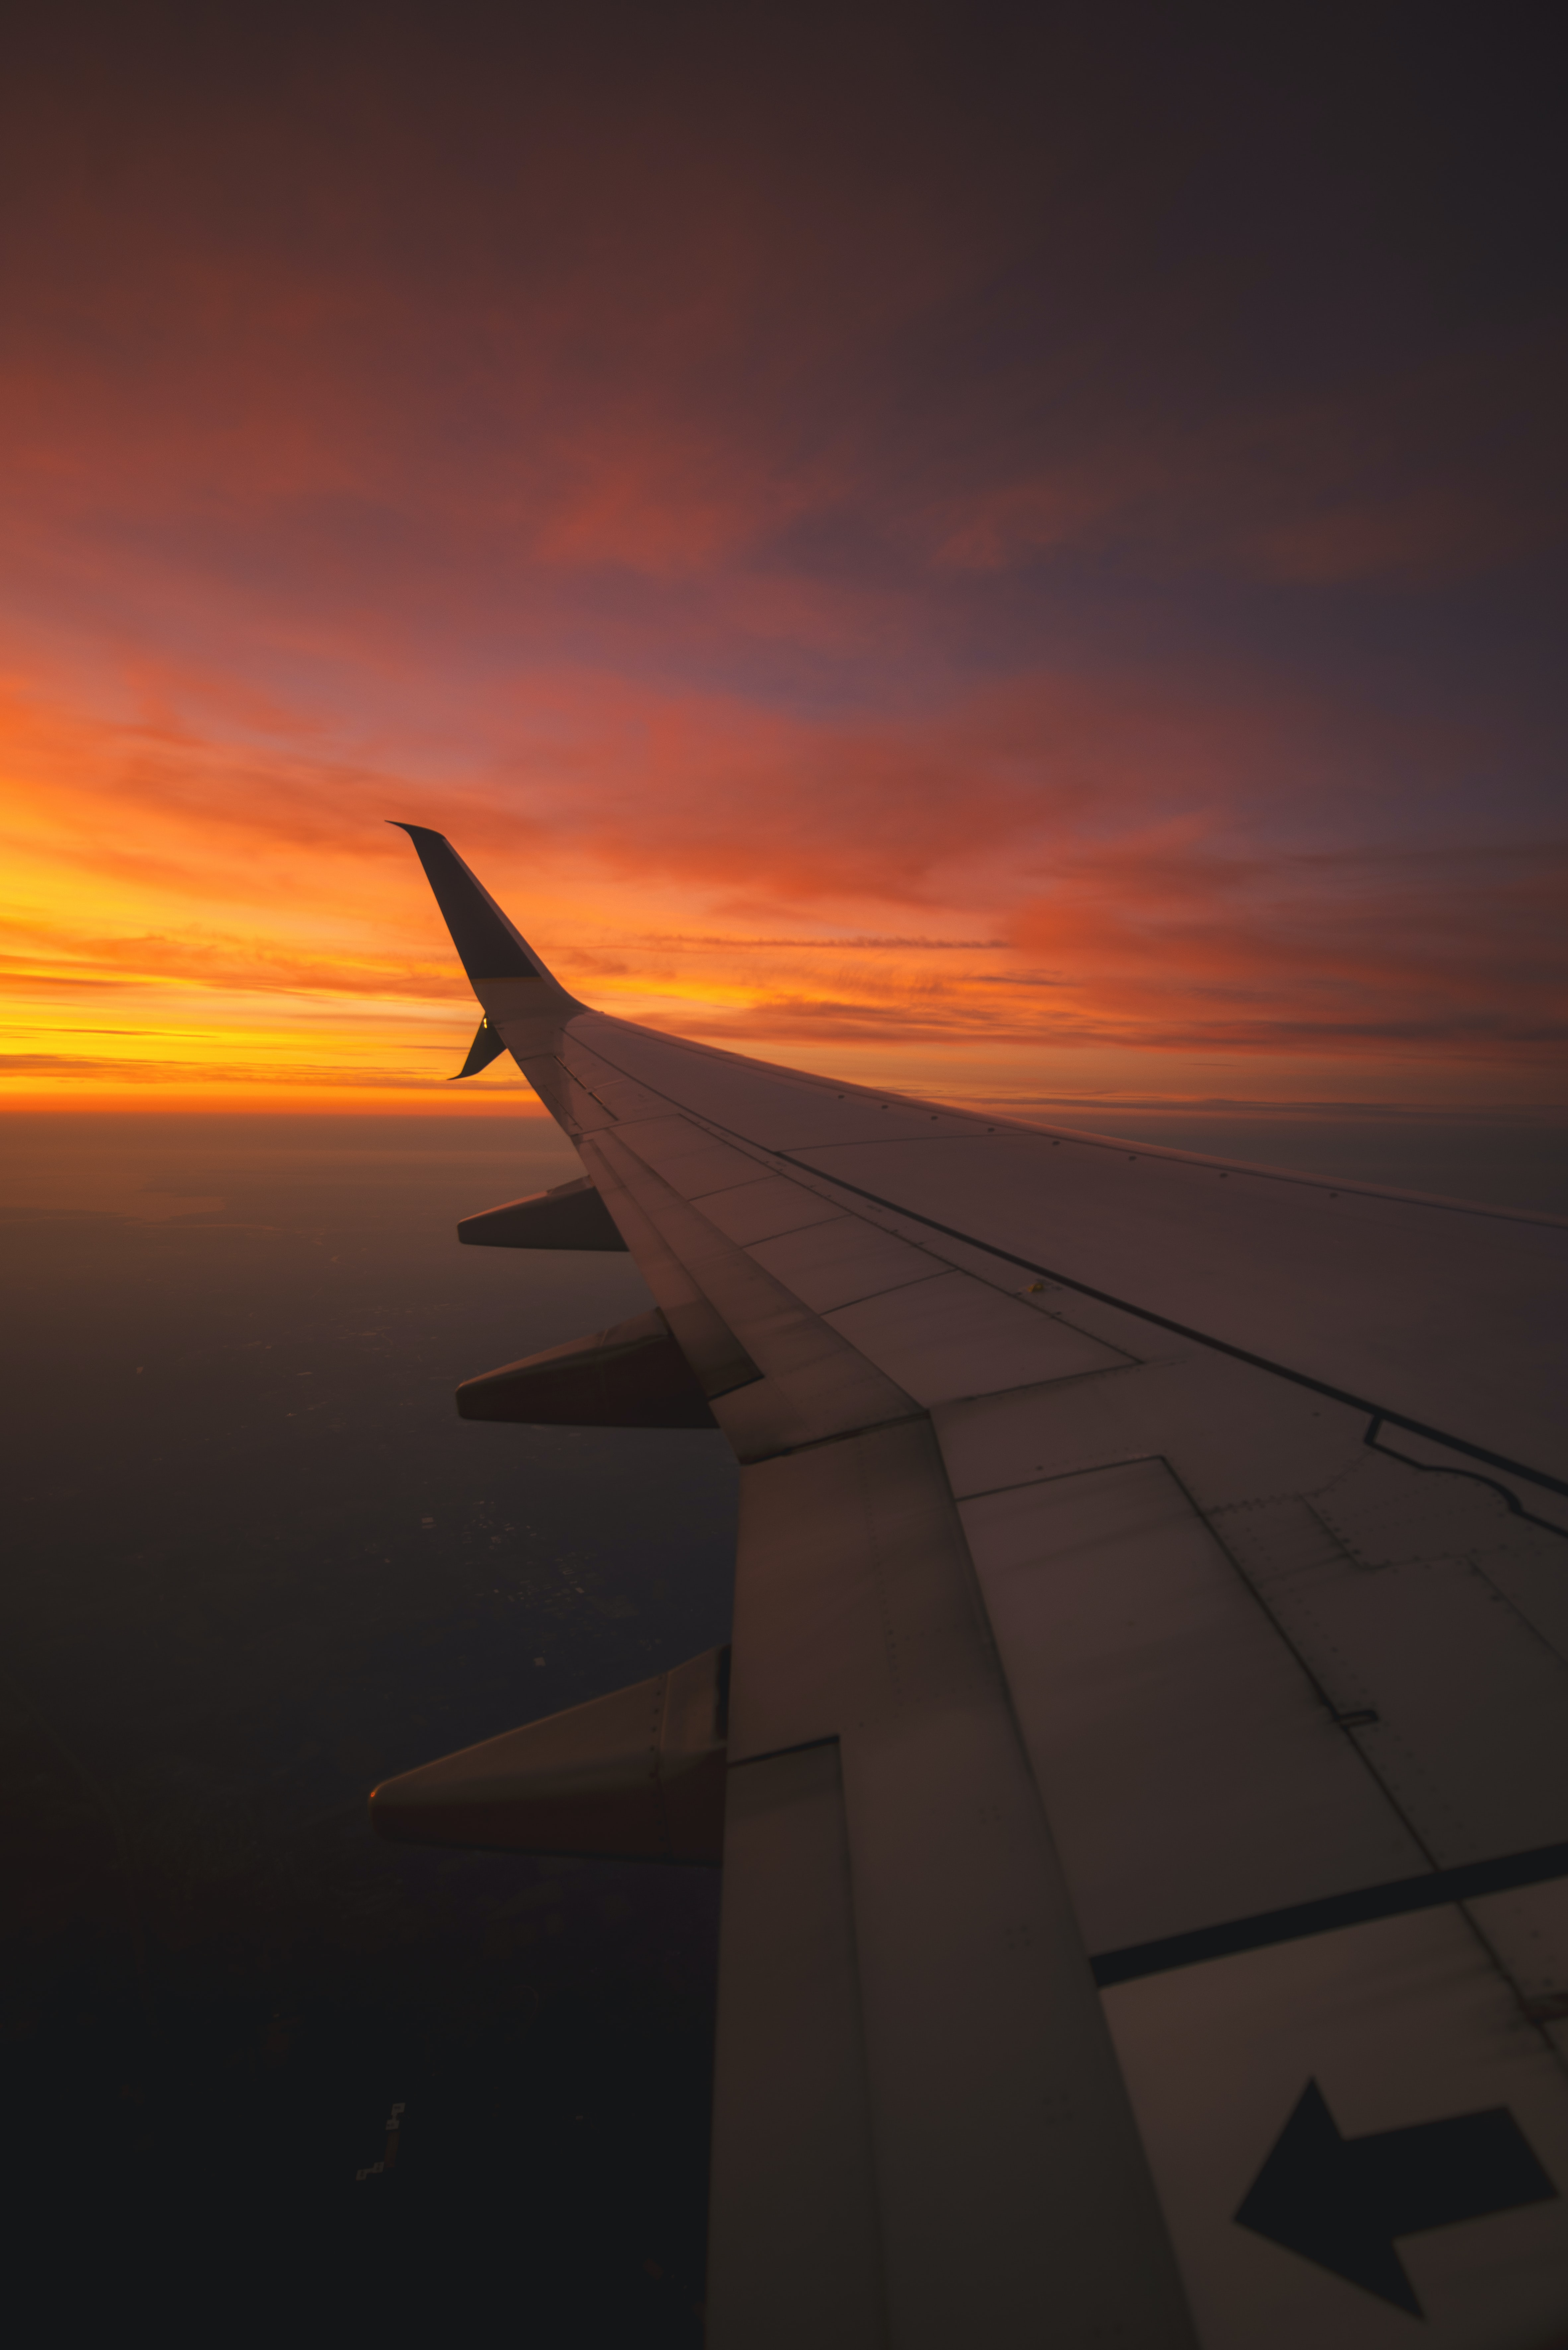 bird's eye view photography of airplane wing